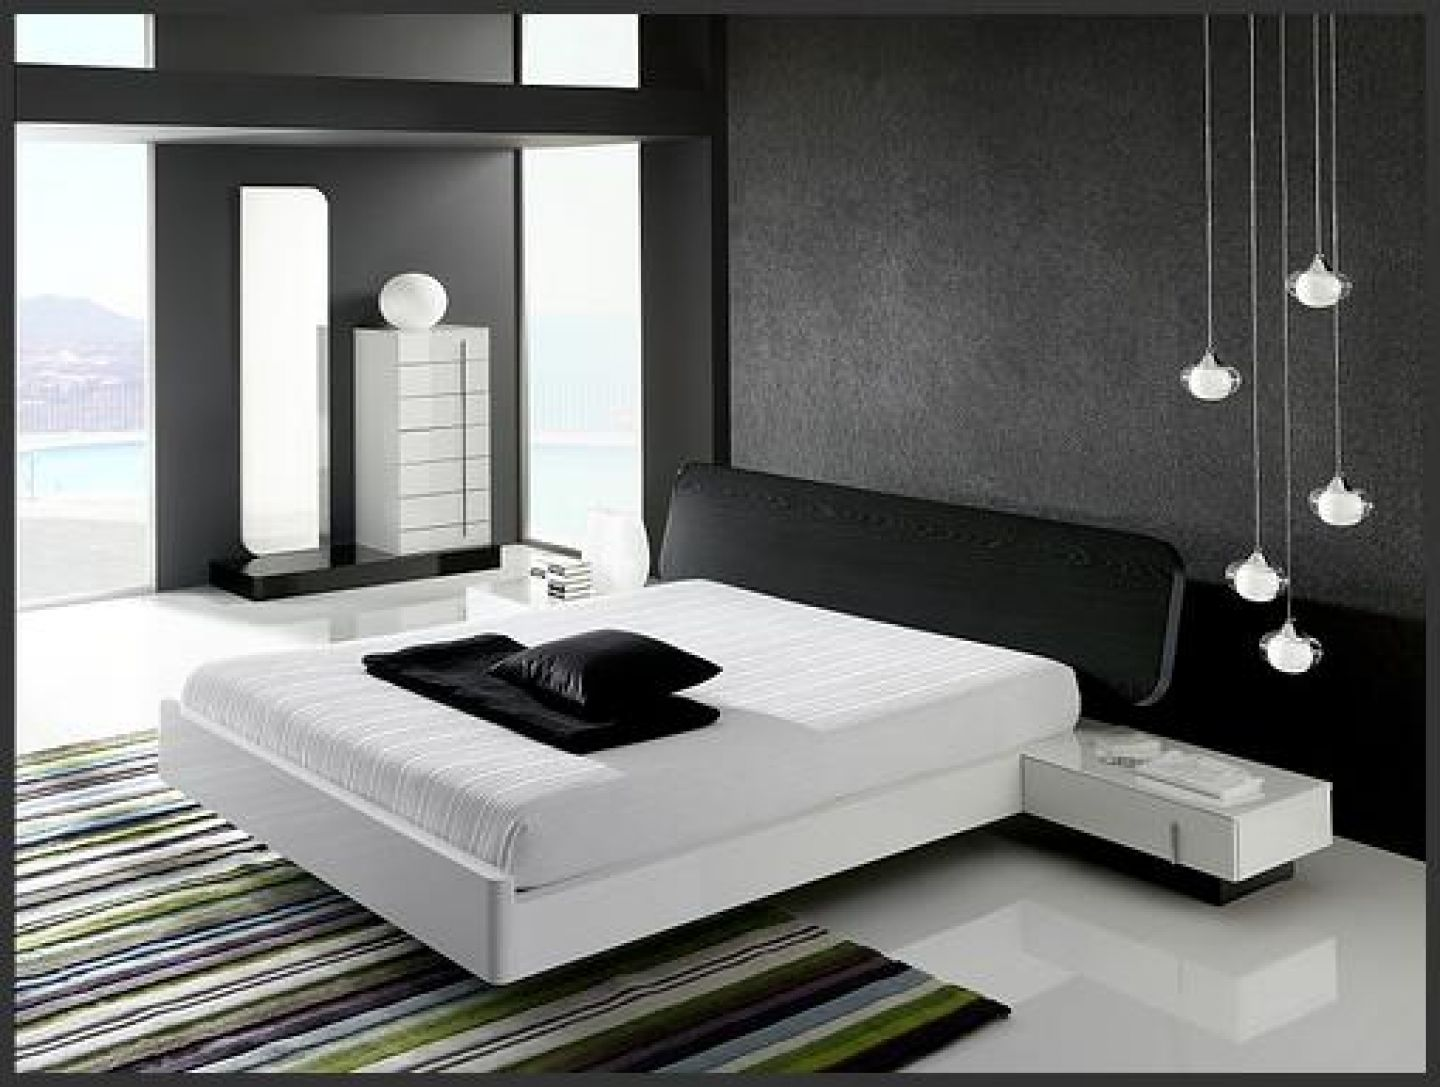 Interior minimalist black and white bedroom interior Black and white room decor